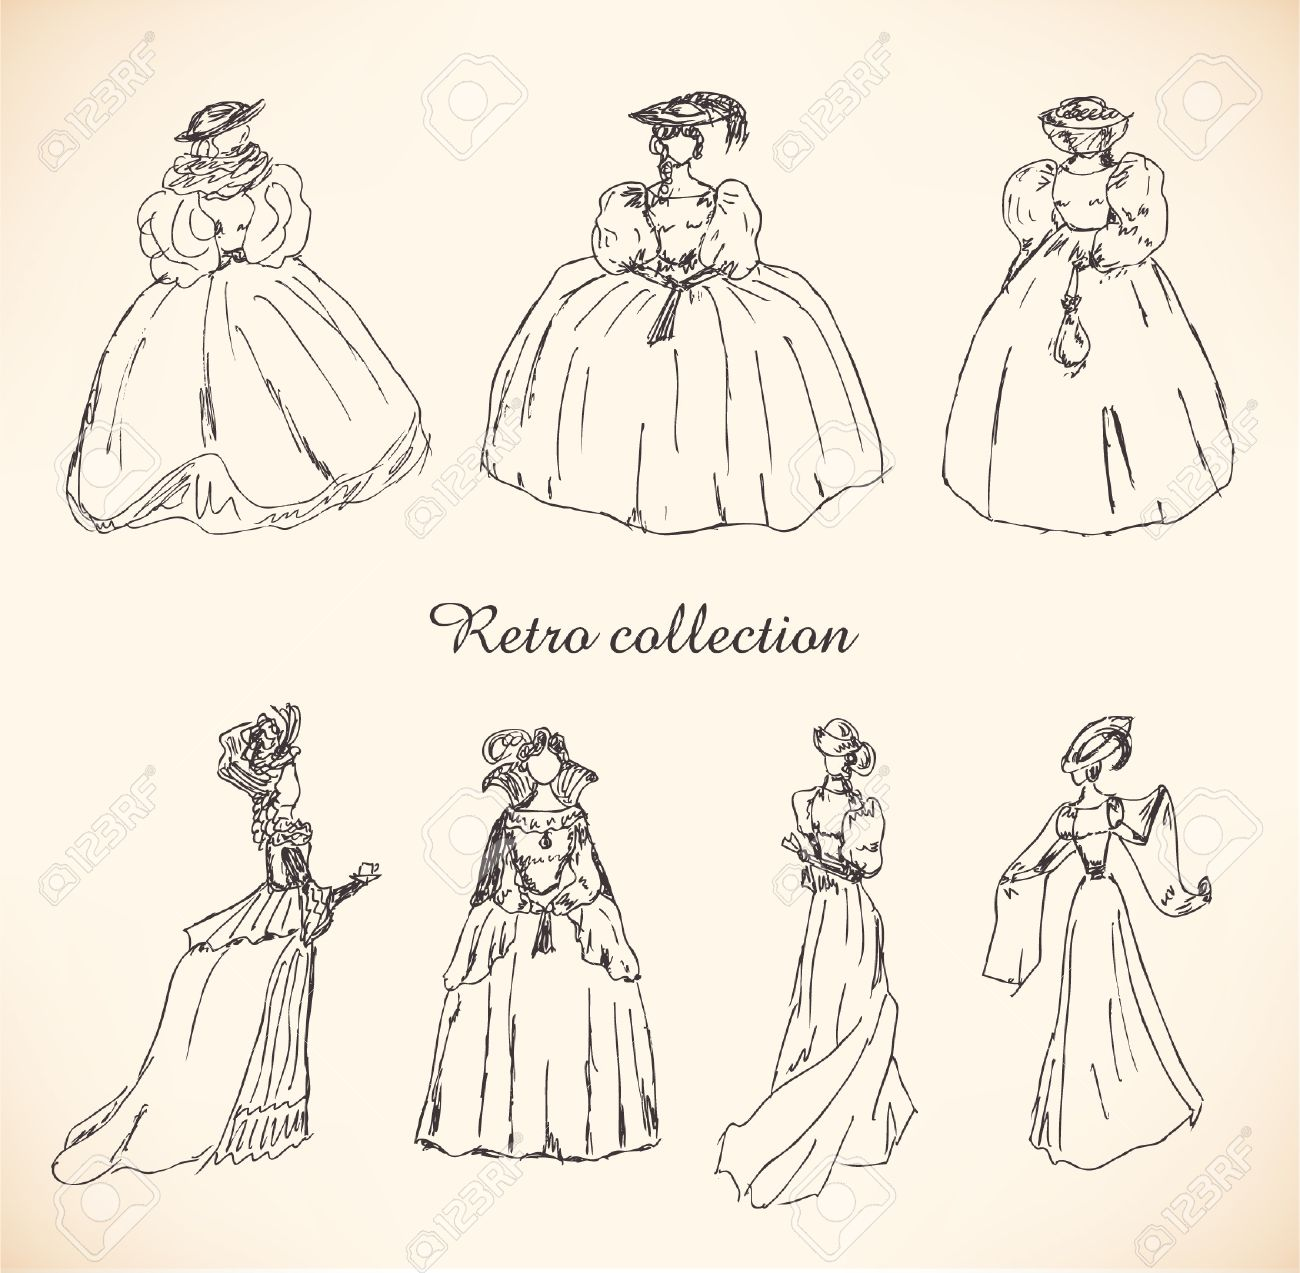 1300x1273 Set With Sketches Of Women In Retro Clothes. Ladies In Historical